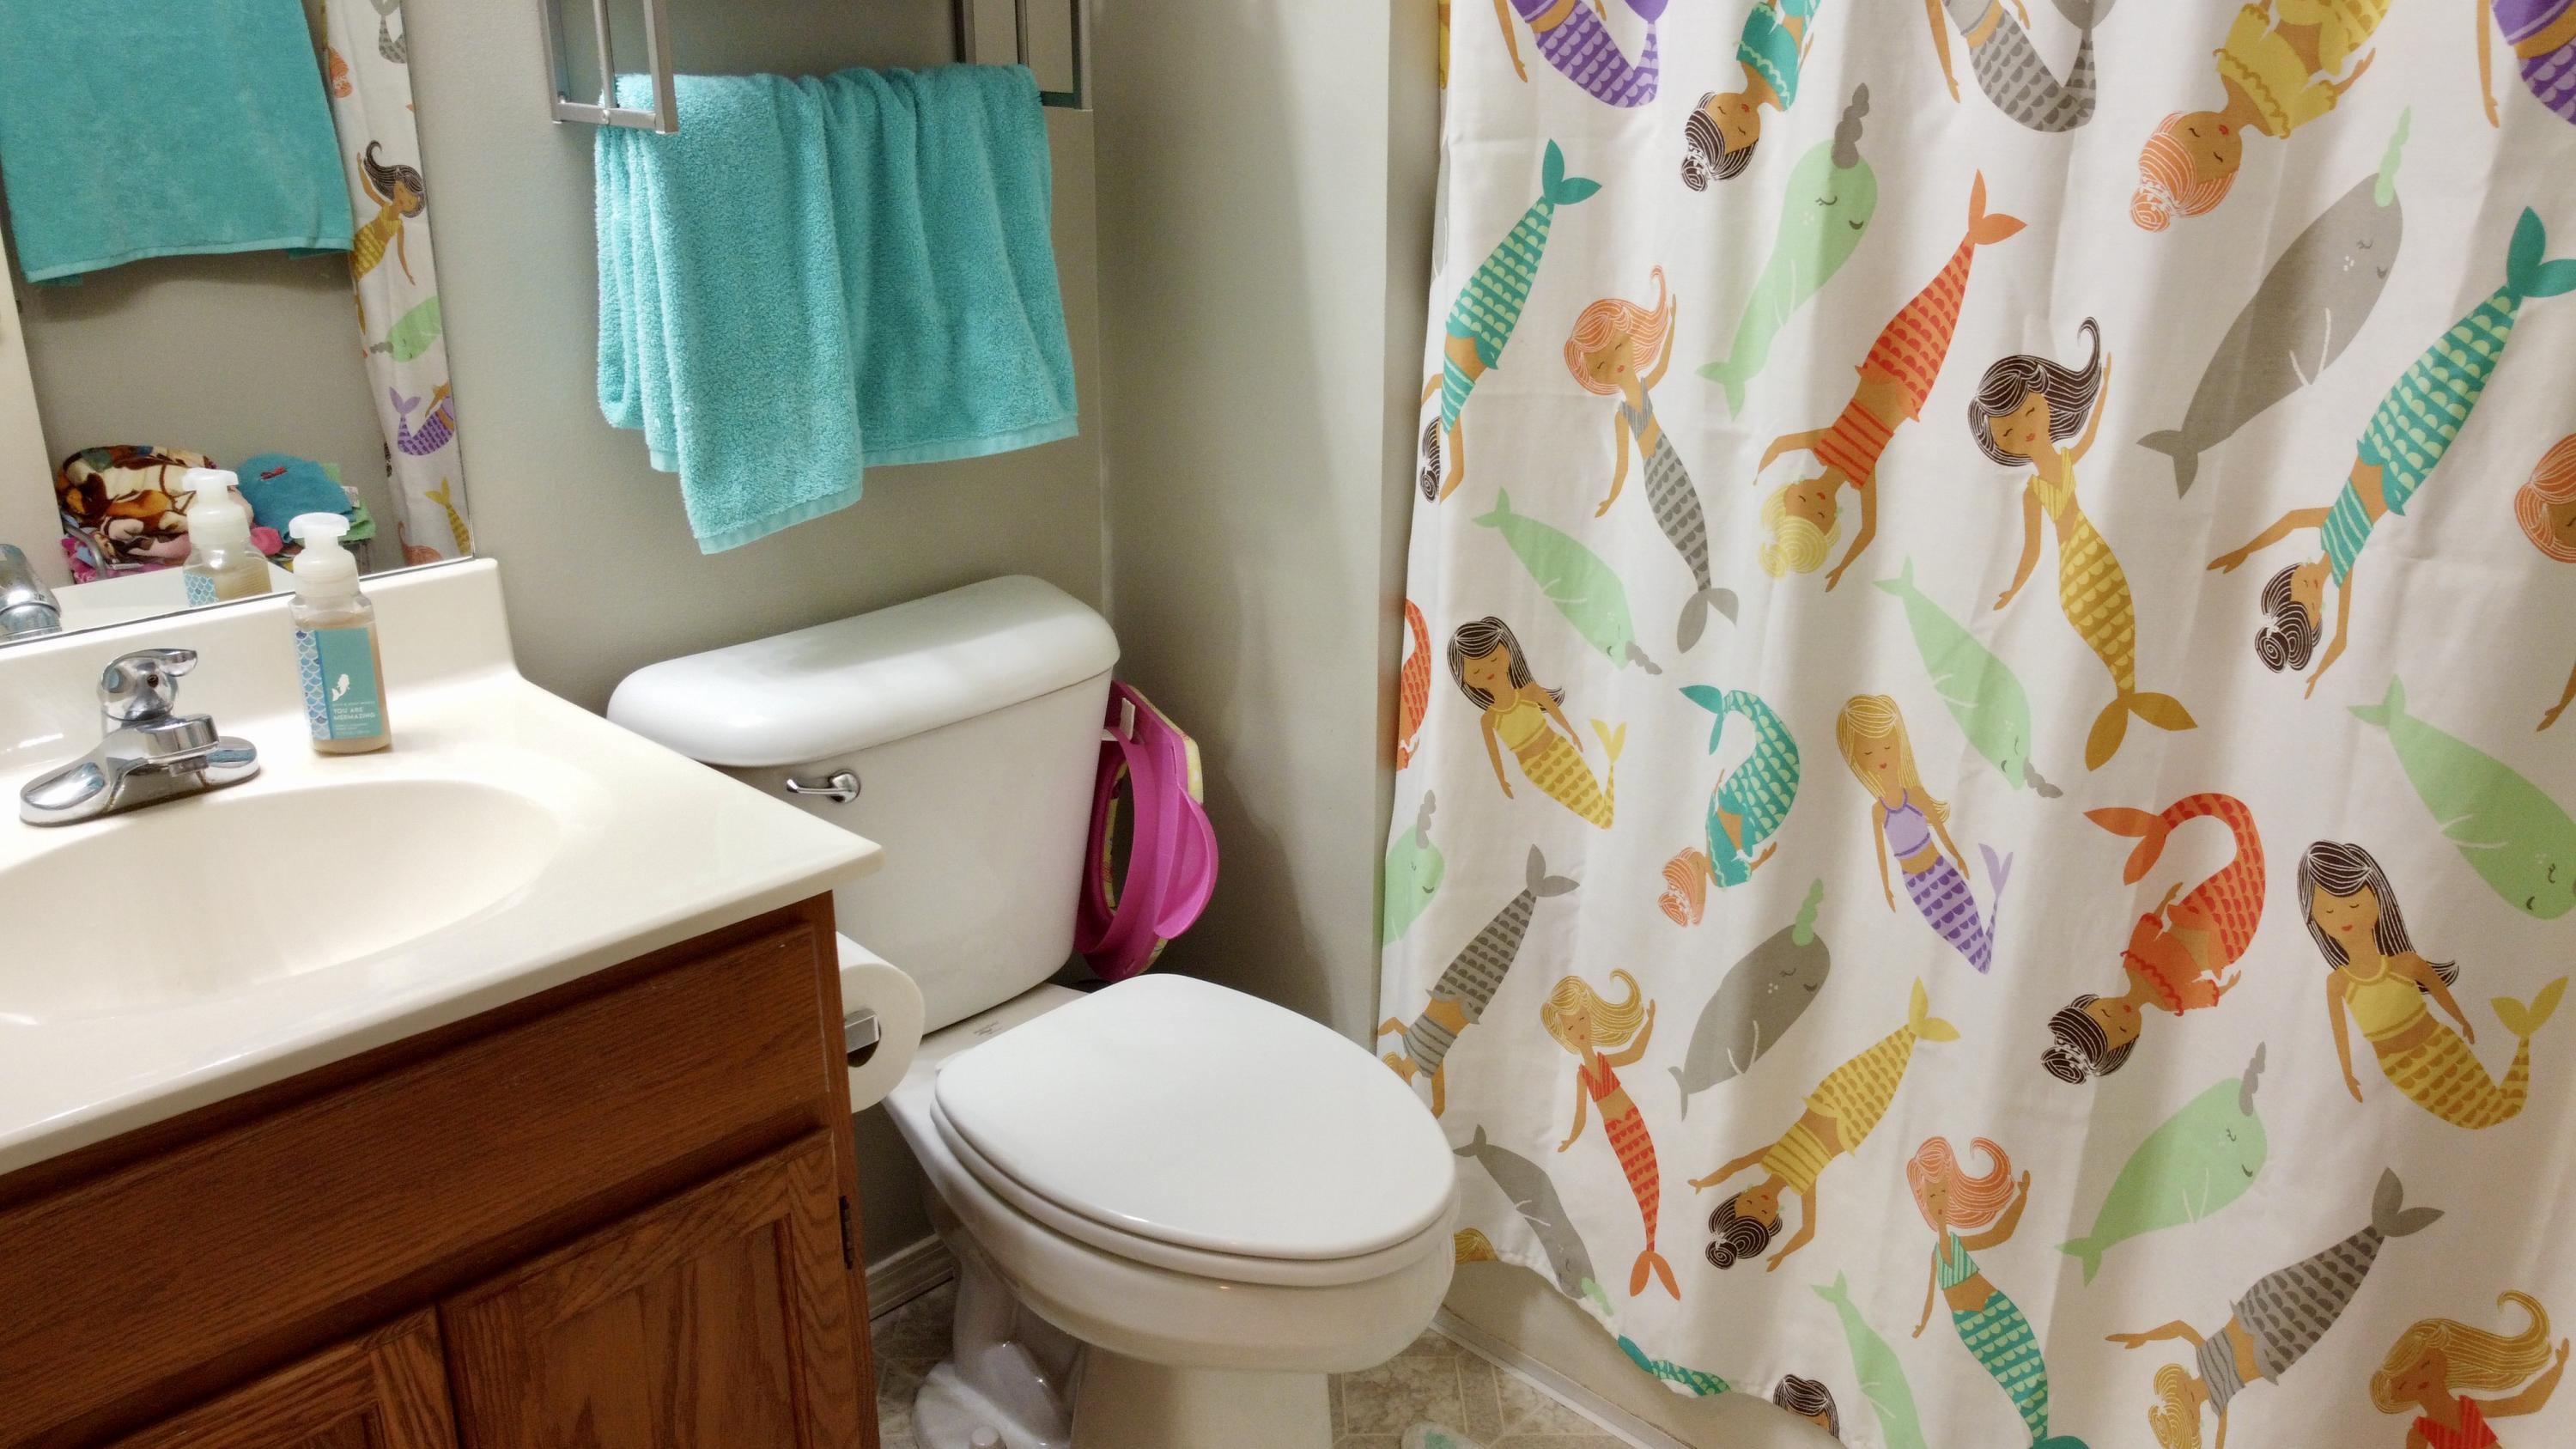 5601 Libby, Knoxville, Tennessee, United States 37924, 2 Bedrooms Bedrooms, ,2 BathroomsBathrooms,Single Family,For Sale,Libby,1124659